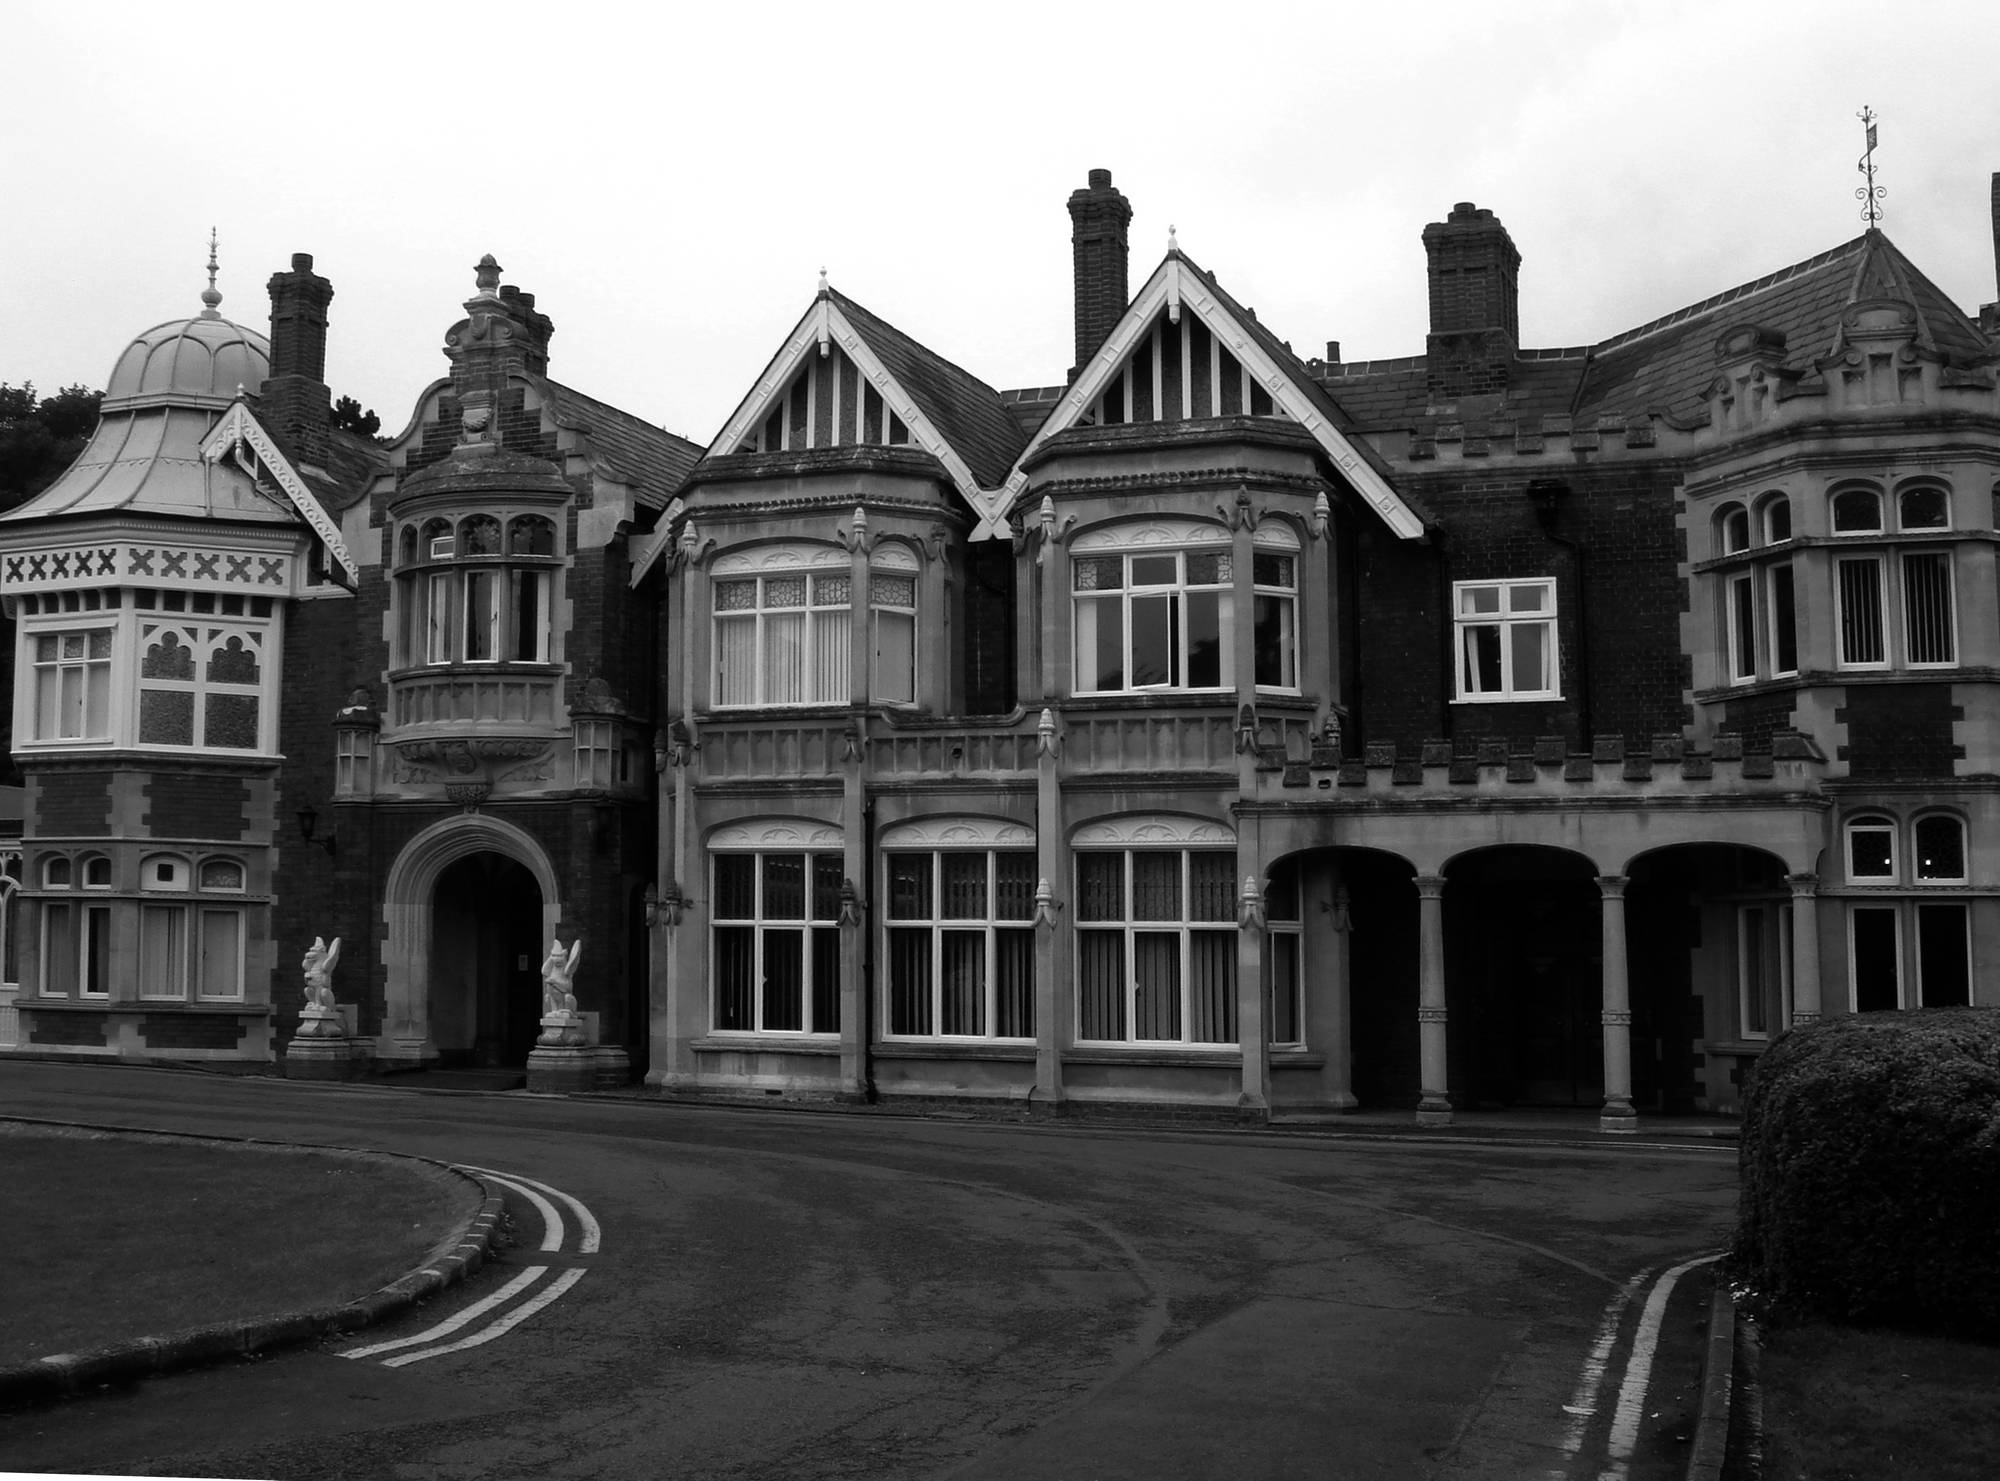 The Blechley Centre has been turned into a secret one since September 1939